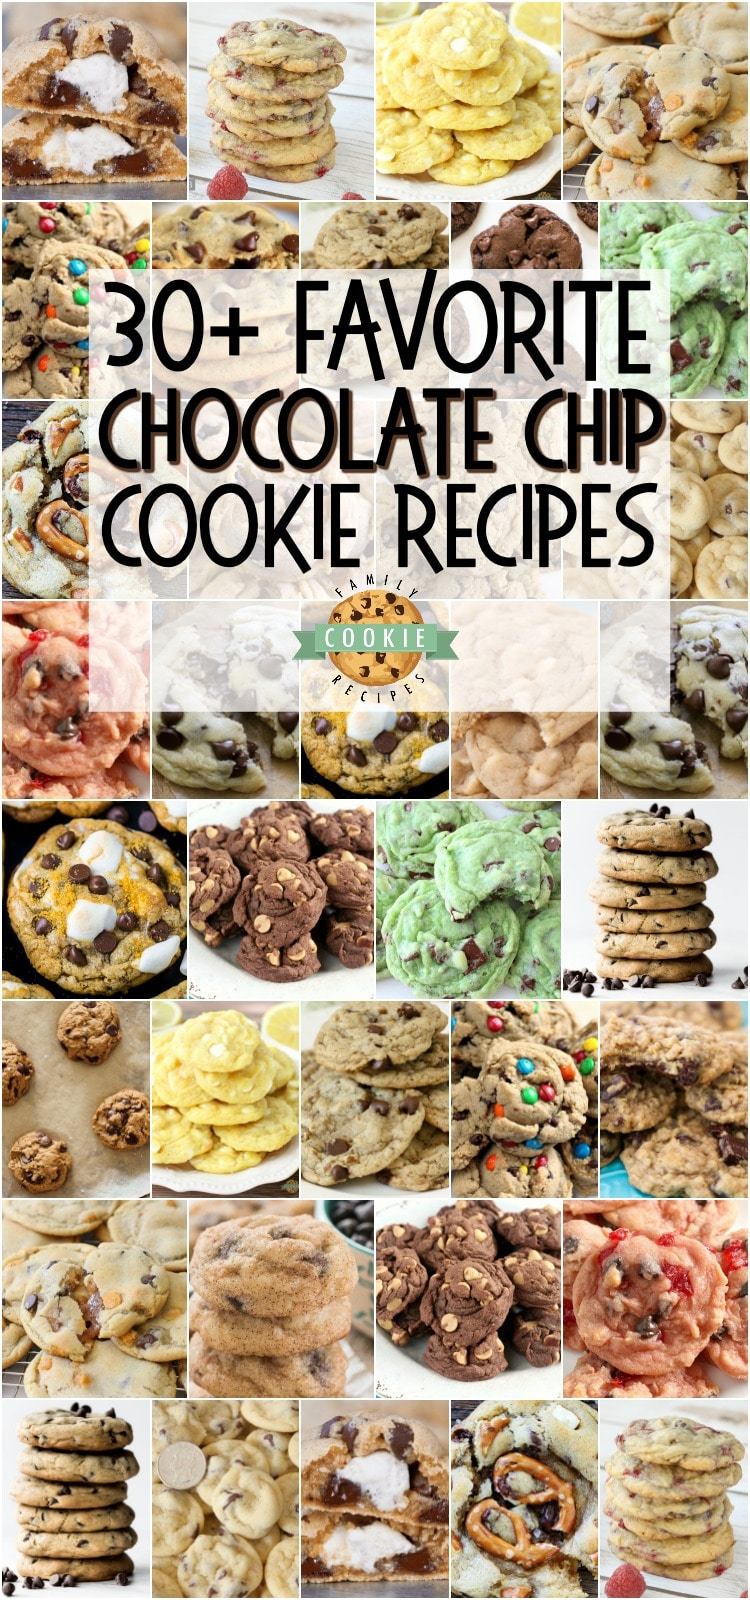 Best Chocolate Chip Cookies - everything from Classic Chocolate Chip, to Peanut Butter Chocolate Chip and even to Cherry Chocolate Chip cookies, this collection of homemade chocolate chip cookie recipes is sure to become a favorite! via @familycookierecipes